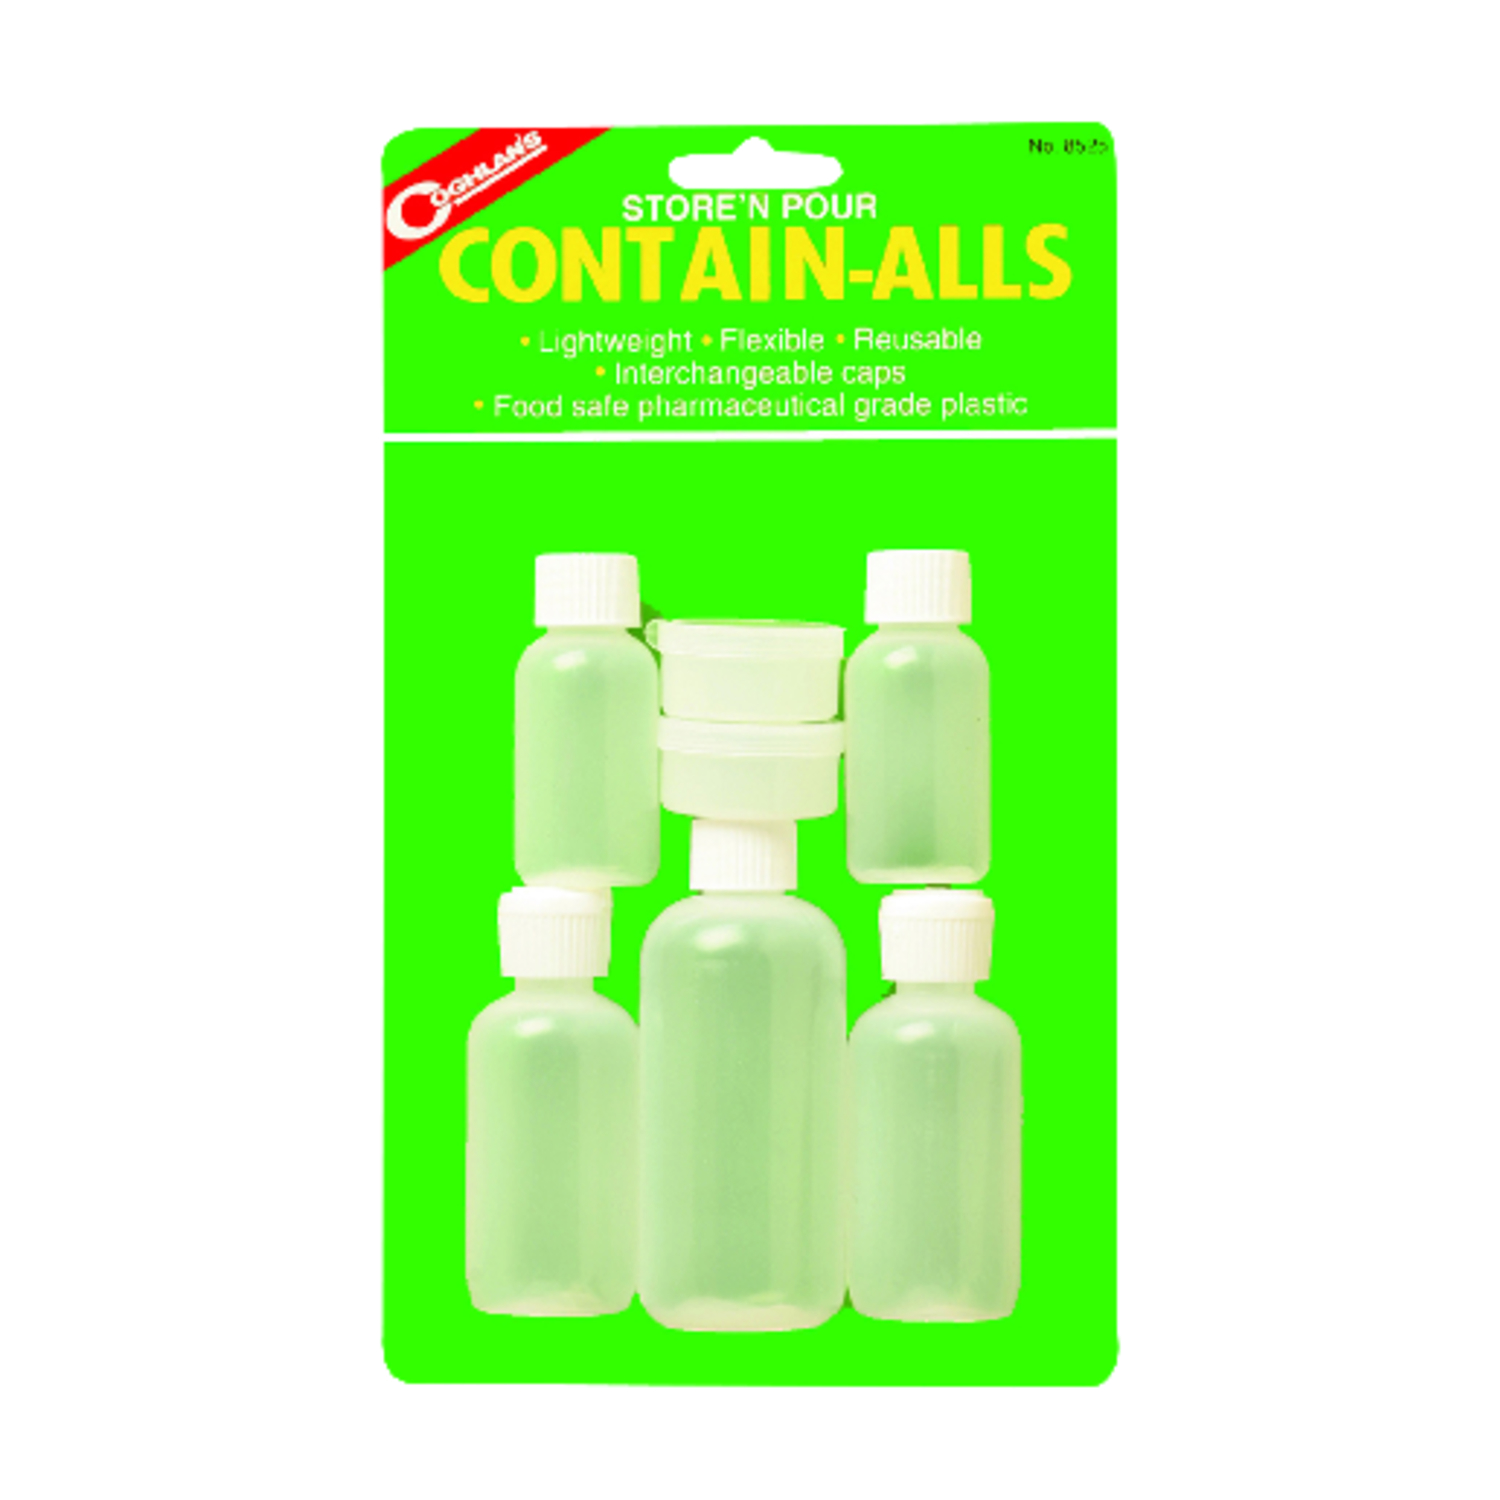 Coghlan's  Store N' Pour Contain-Alls  Water Carrier  11.000 in. H x 6.500 in. W x 1.750 in. L 7 pk